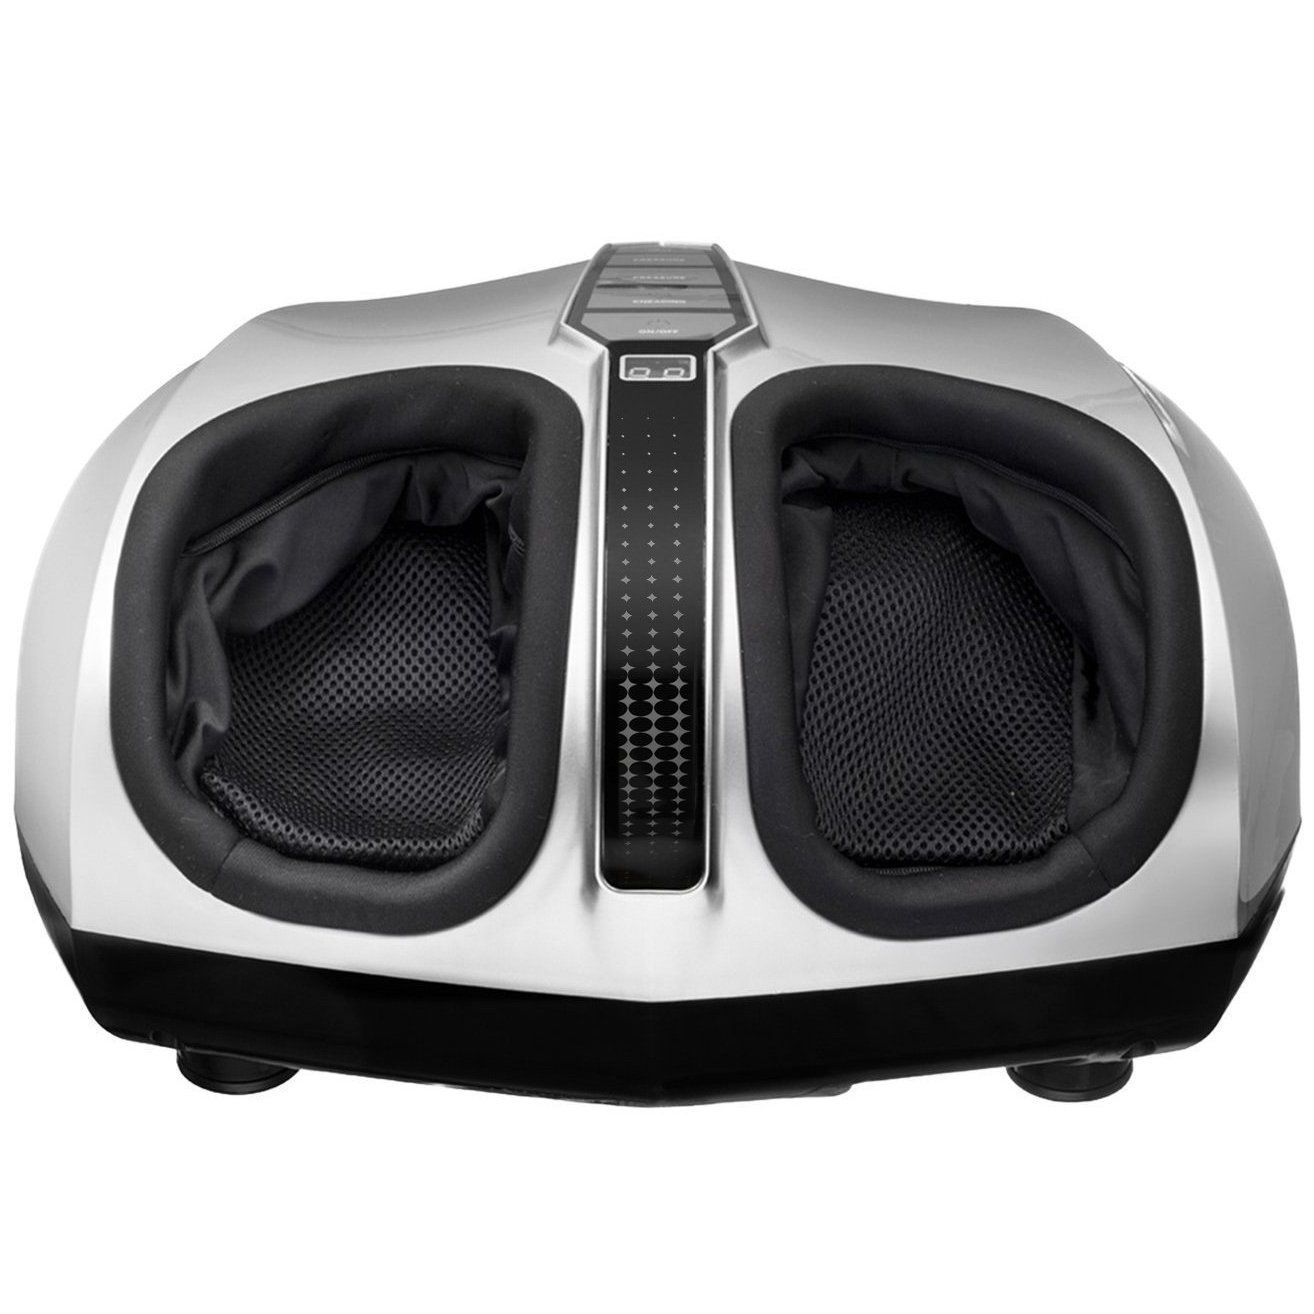 Belmint Shiatsu Foot Massager with Switchable Heat Function, Delivers Deep-Kneading Massage Relief for Tired Muscles and Plantar Fasciitis, (Silver)